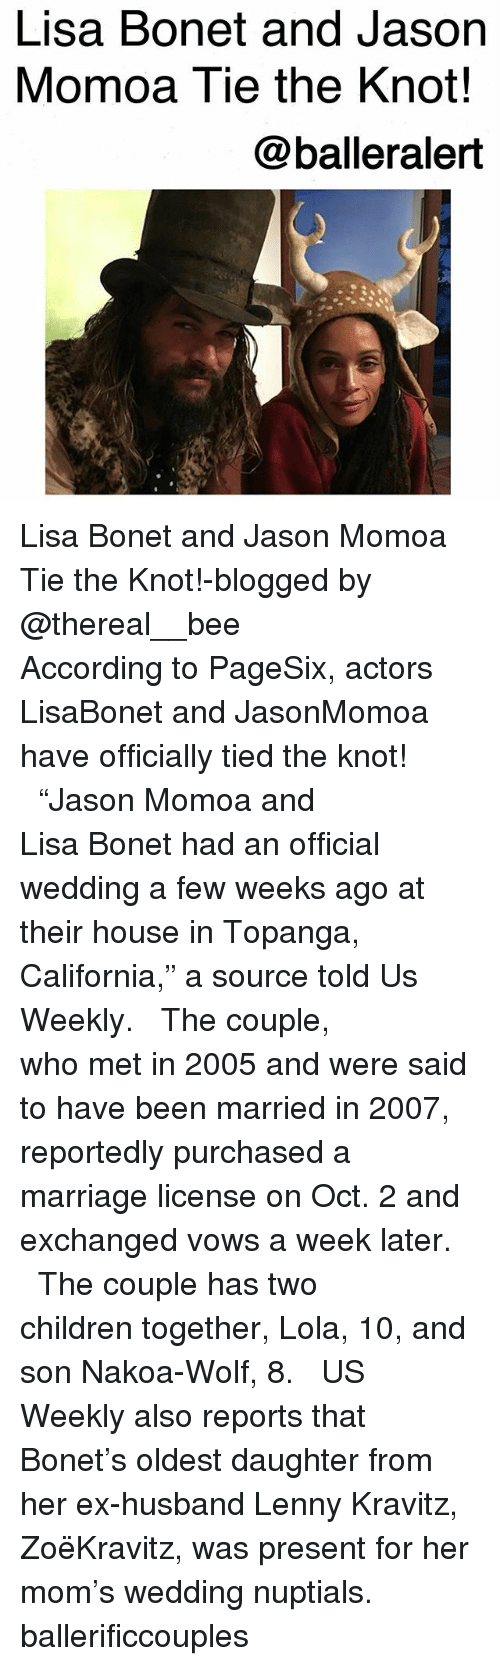 """Children, Lenny, and Lenny Kravitz: Lisa Bonet and Jason  Momoa Tie the Knot!  @balleralert Lisa Bonet and Jason Momoa Tie the Knot!-blogged by @thereal__bee ⠀⠀⠀⠀⠀⠀⠀⠀⠀ ⠀⠀ According to PageSix, actors LisaBonet and JasonMomoa have officially tied the knot! ⠀⠀⠀⠀⠀⠀⠀⠀⠀ ⠀⠀ """"Jason Momoa and Lisa Bonet had an official wedding a few weeks ago at their house in Topanga, California,"""" a source told Us Weekly. ⠀⠀⠀⠀⠀⠀⠀⠀⠀ ⠀⠀ The couple, who met in 2005 and were said to have been married in 2007, reportedly purchased a marriage license on Oct. 2 and exchanged vows a week later. ⠀⠀⠀⠀⠀⠀⠀⠀⠀ ⠀⠀ The couple has two children together, Lola, 10, and son Nakoa-Wolf, 8. ⠀⠀⠀⠀⠀⠀⠀⠀⠀ ⠀⠀ US Weekly also reports that Bonet's oldest daughter from her ex-husband Lenny Kravitz, ZoëKravitz, was present for her mom's wedding nuptials. ballerificcouples"""